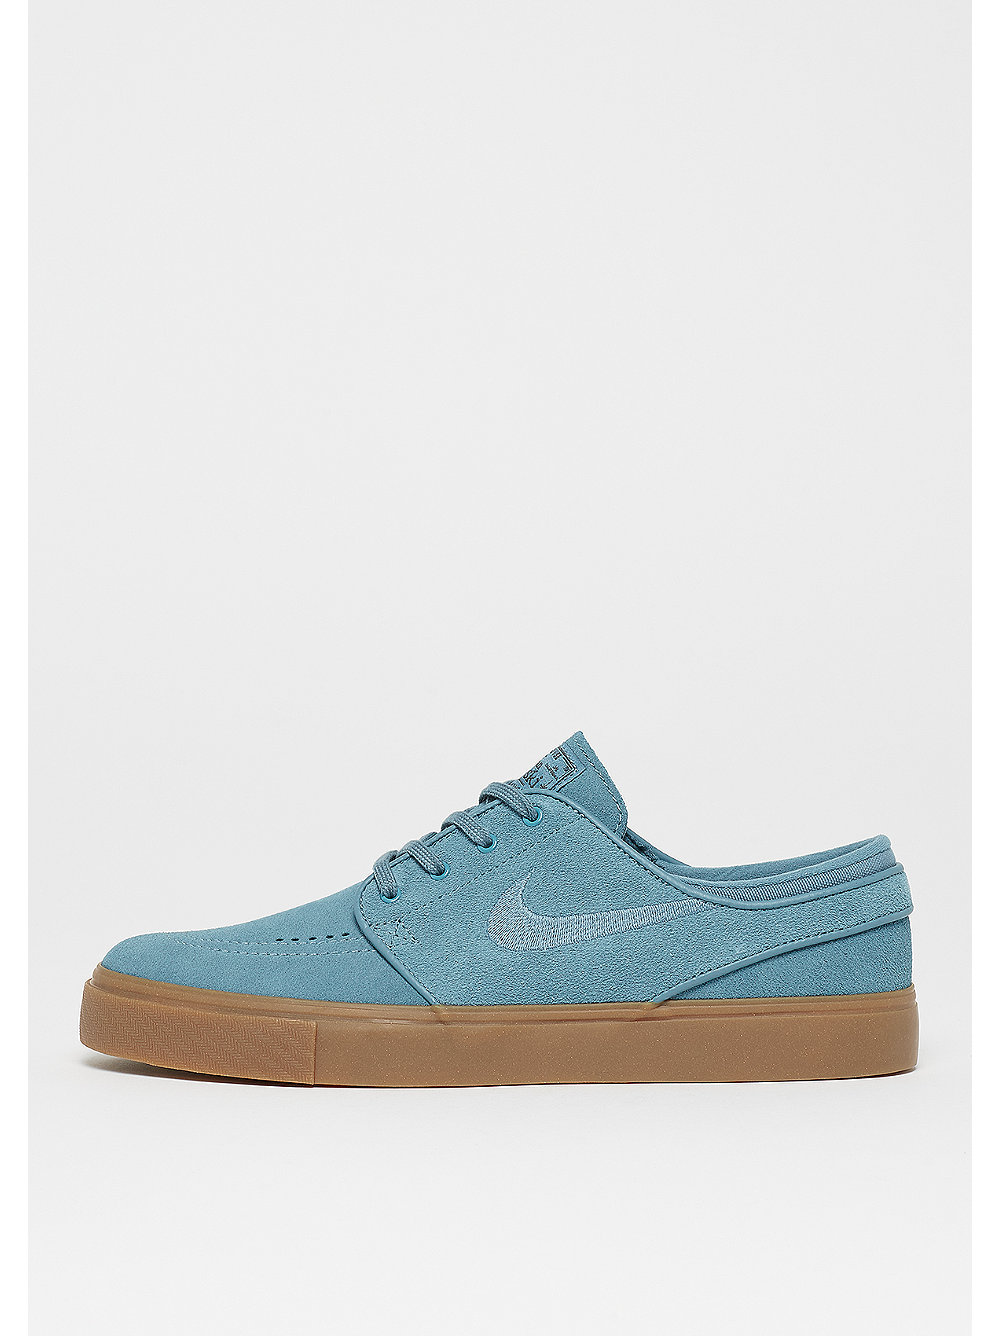 Spielraum Bester Ort ZOOM STEFAN JANOSKI - Sneaker low - noise aqua/thunder blue/dark brown/medium brown/light brown Footlocker Bilder Online GafBd